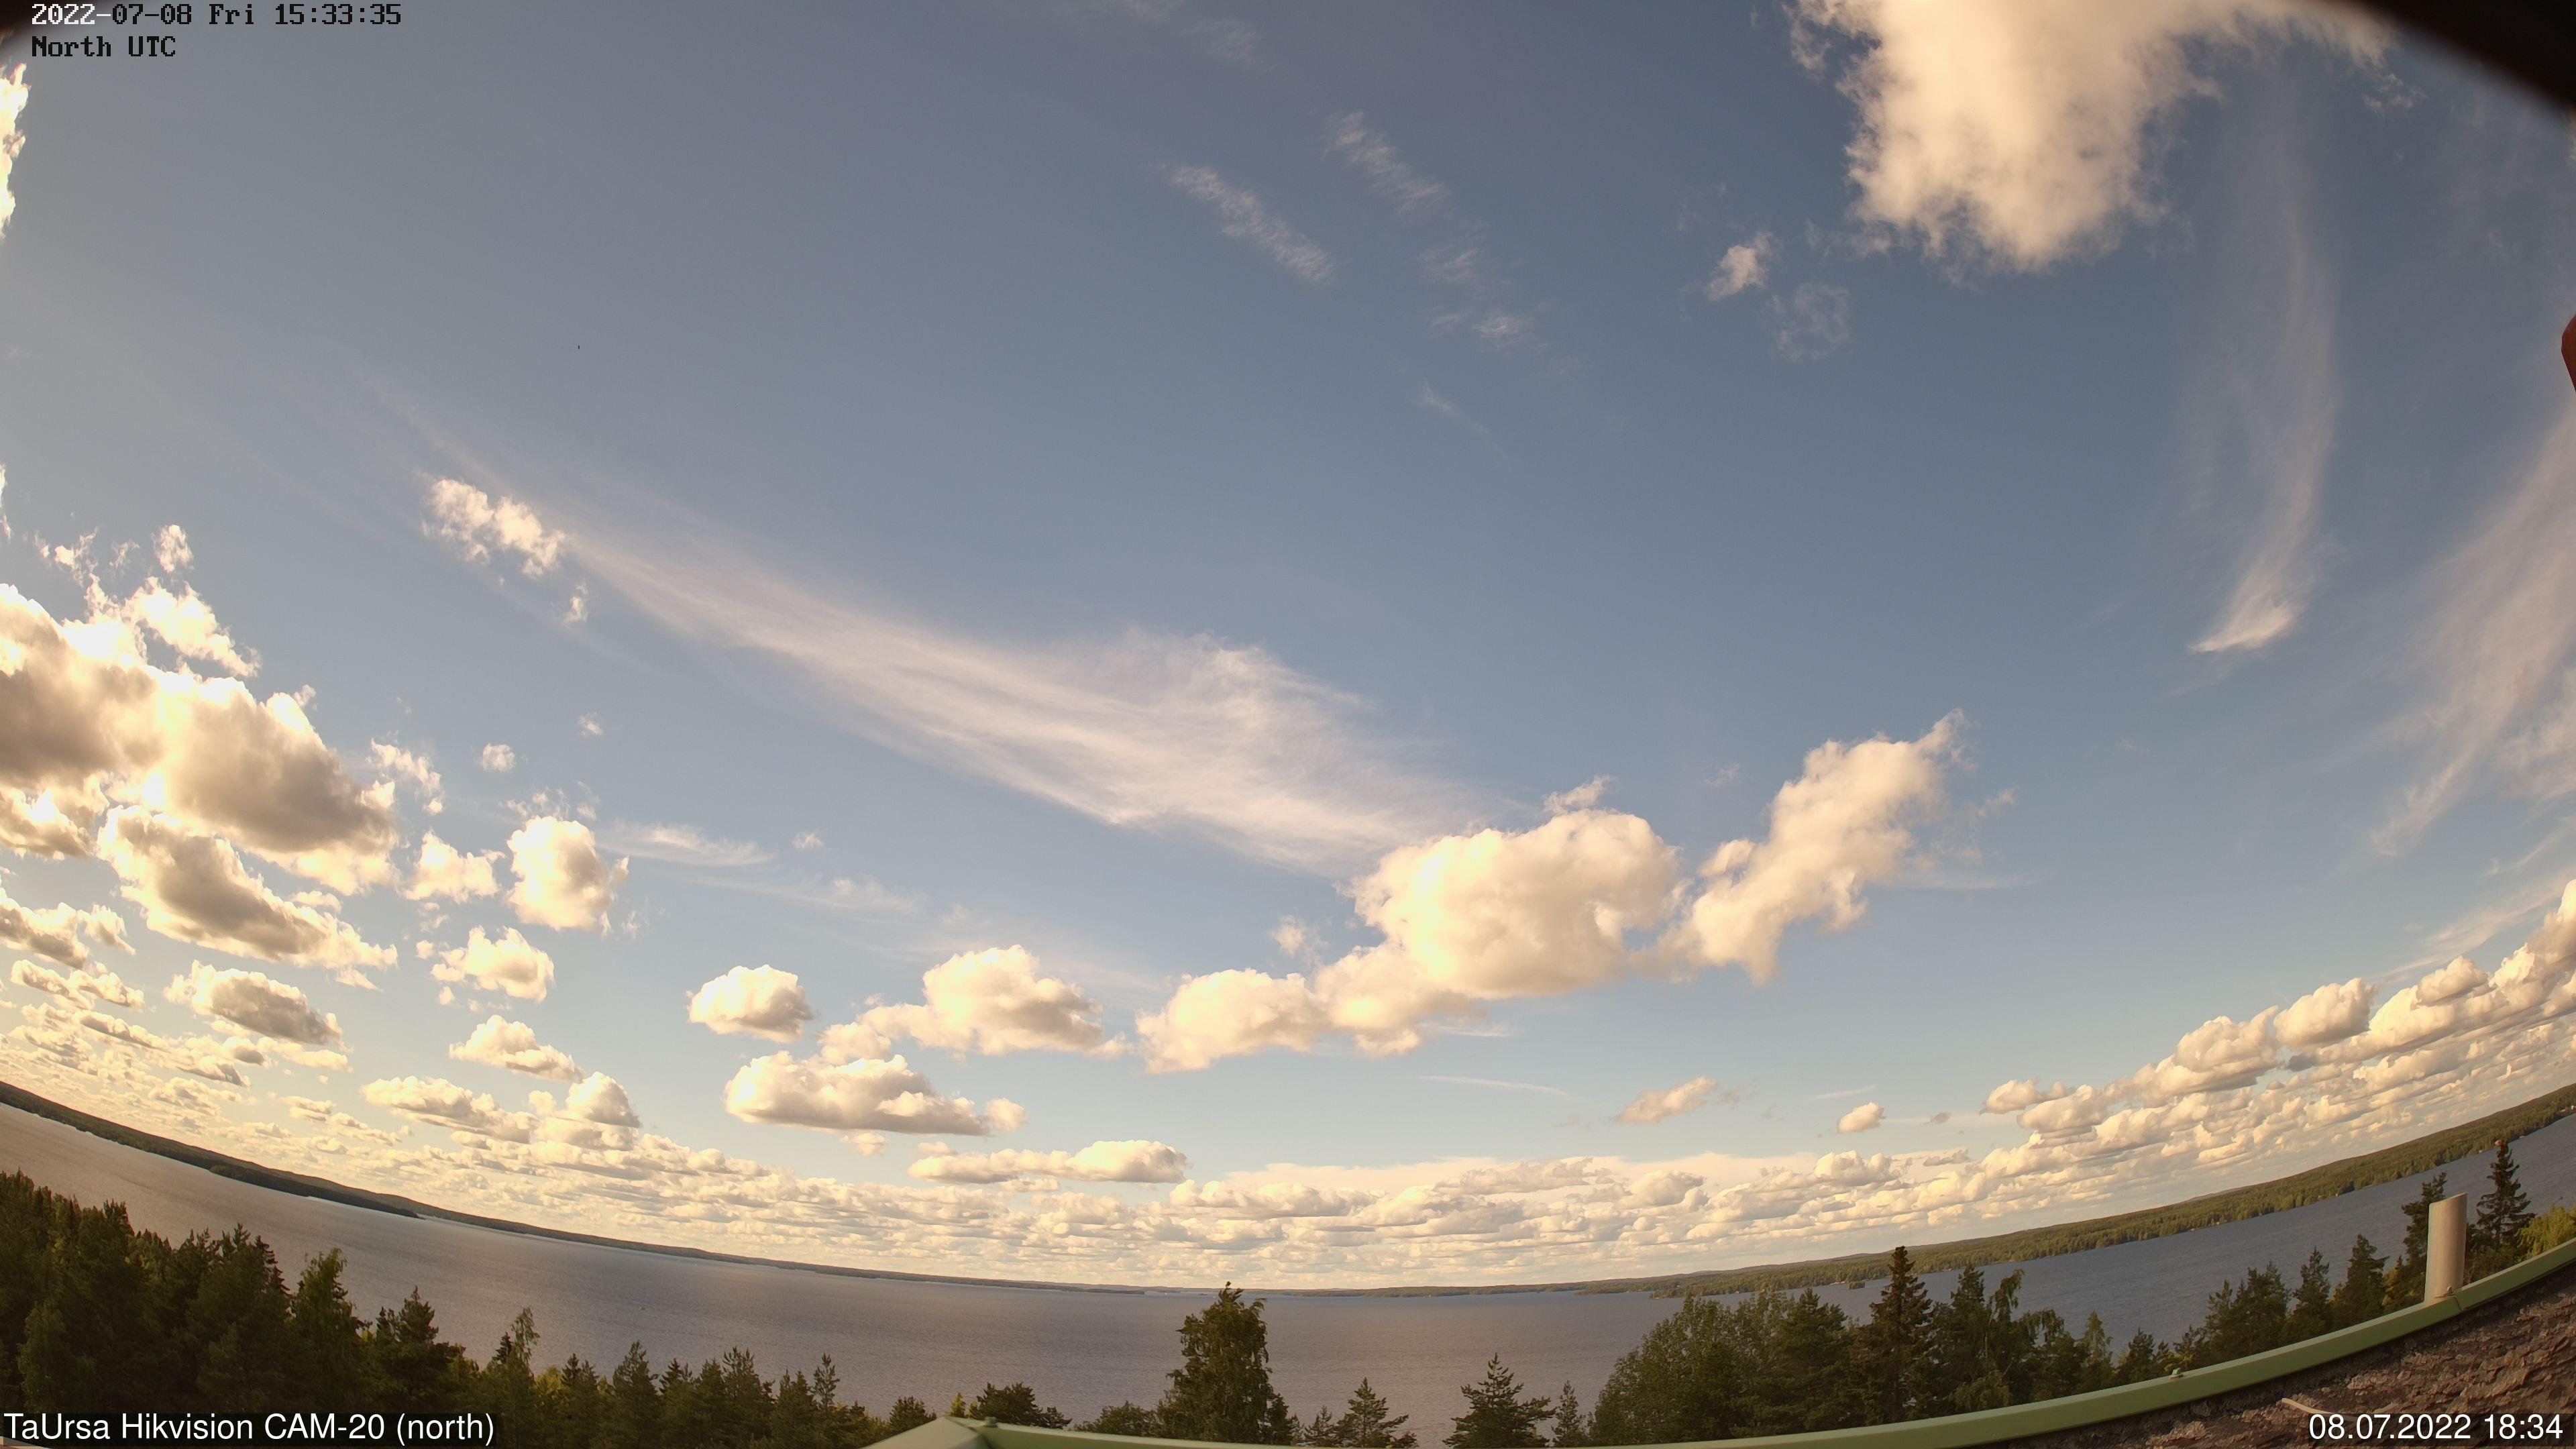 Tampere, Finland - North-East aurora live camera